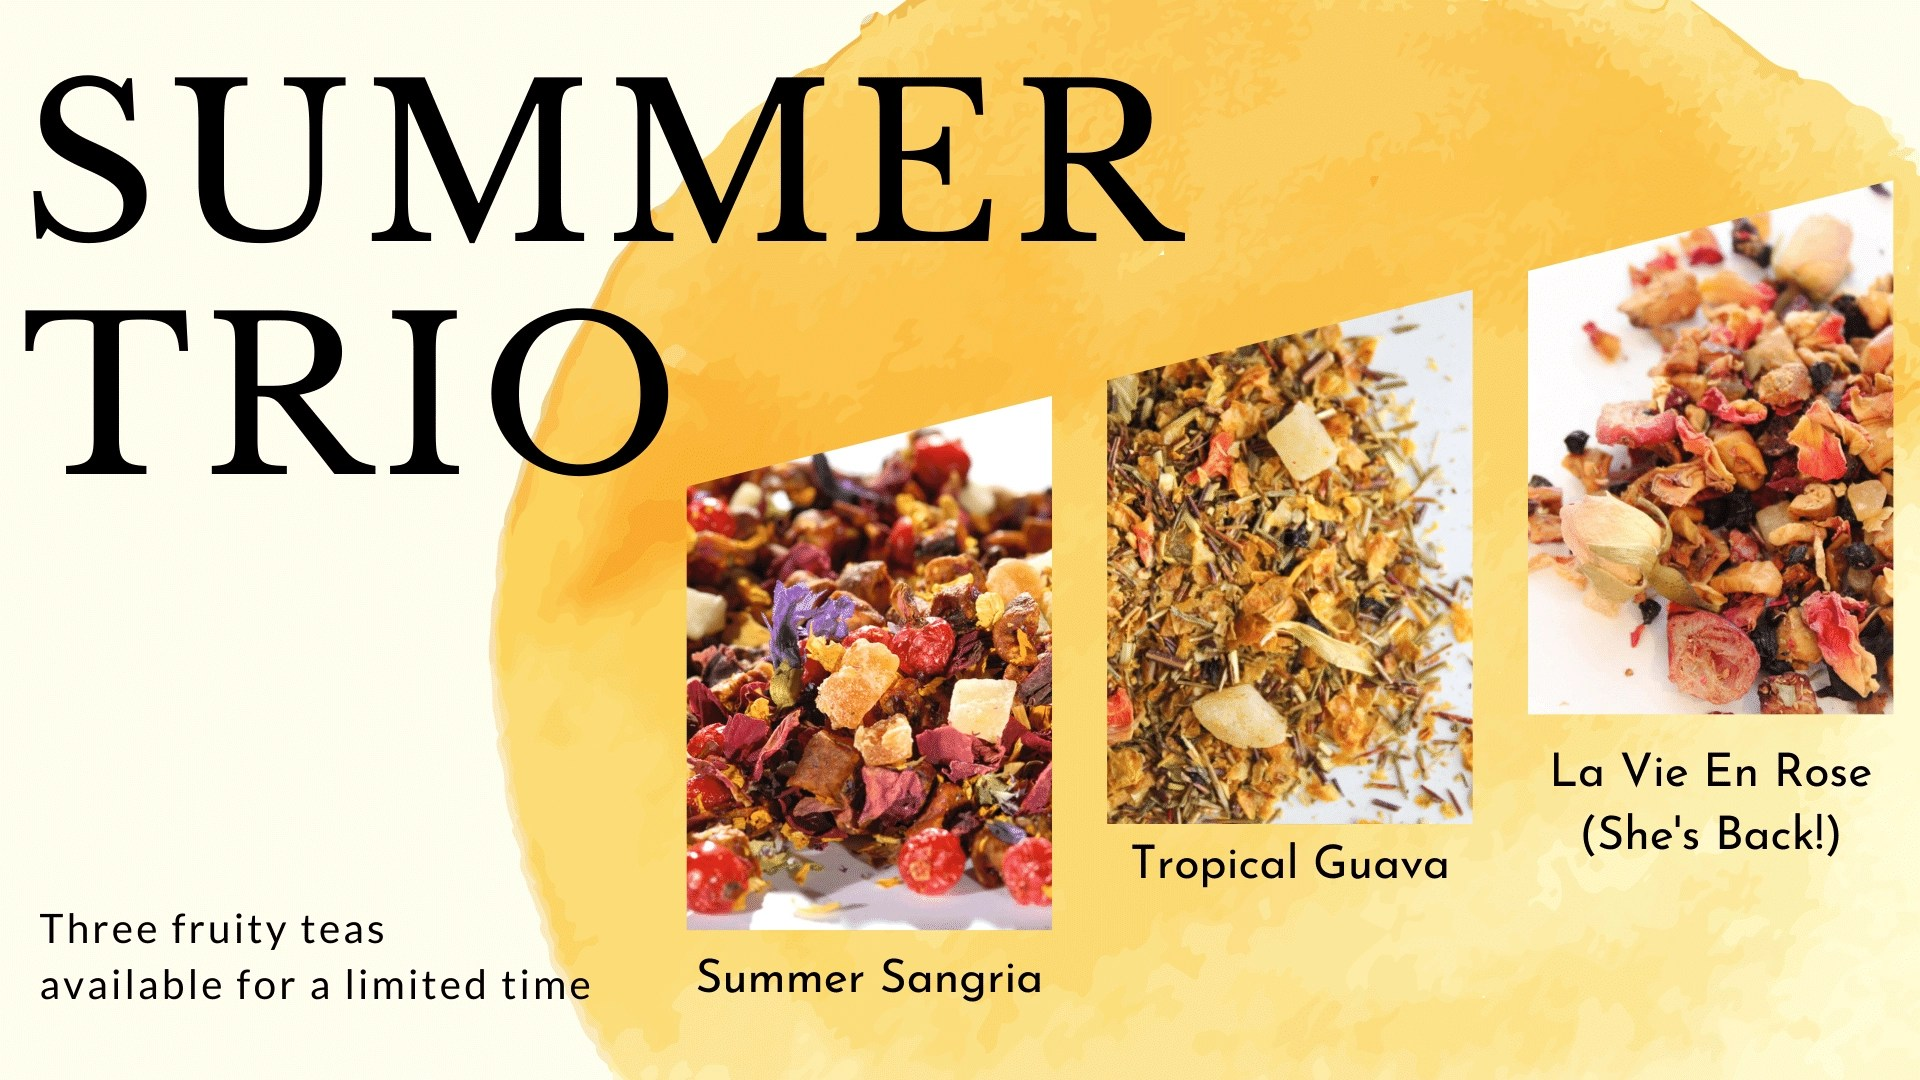 """text that reads """"summer trio: three new teas available for a limited time."""" and photos of three teas named Summer Sangria (herbal), Tropical Guava (rooibos), and La Vie En Rose (herbal). Bold black text on a light yellow background with a golden sun illustration."""